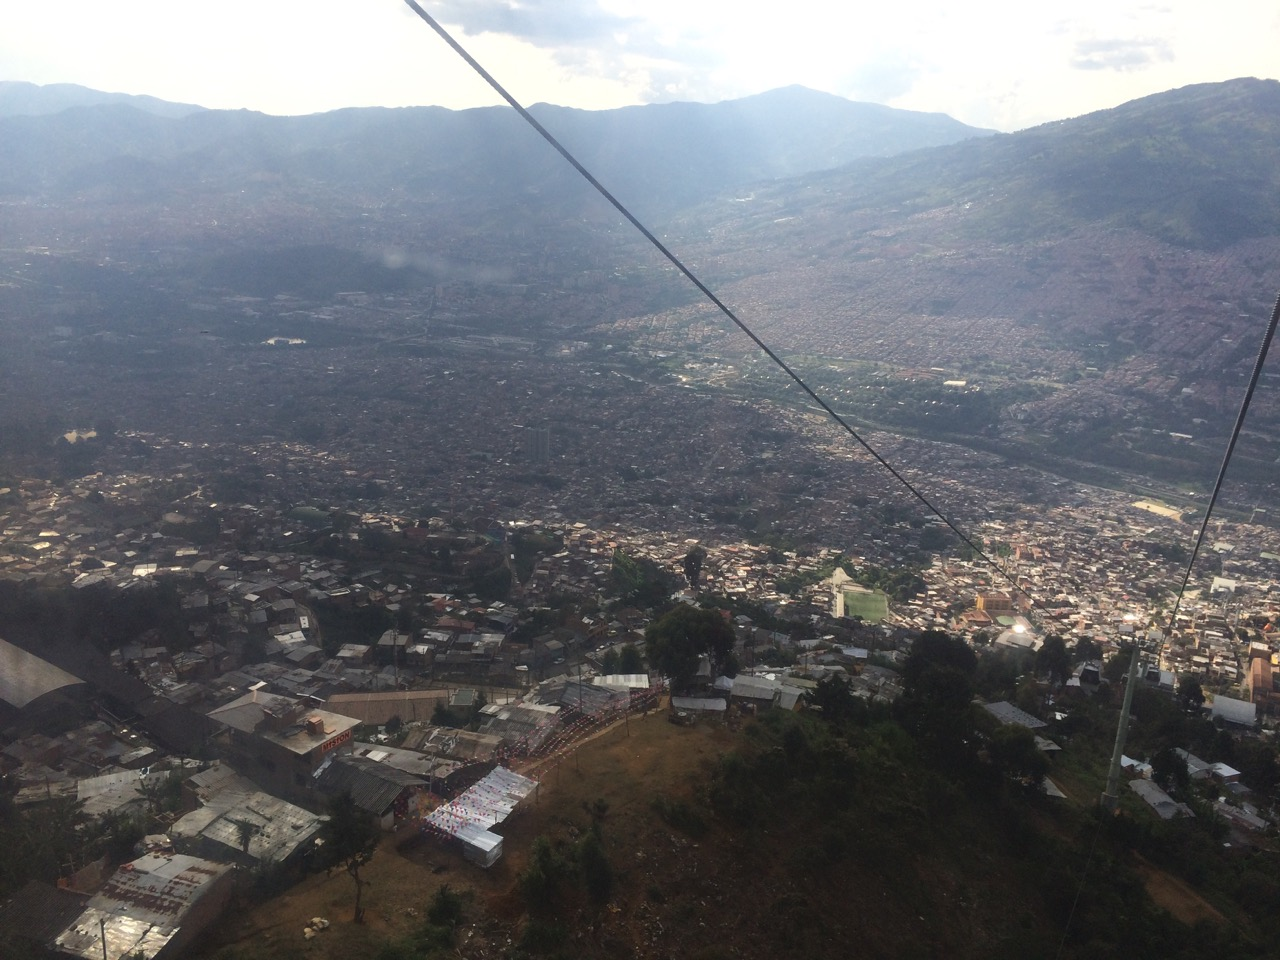 Riding above Medellin